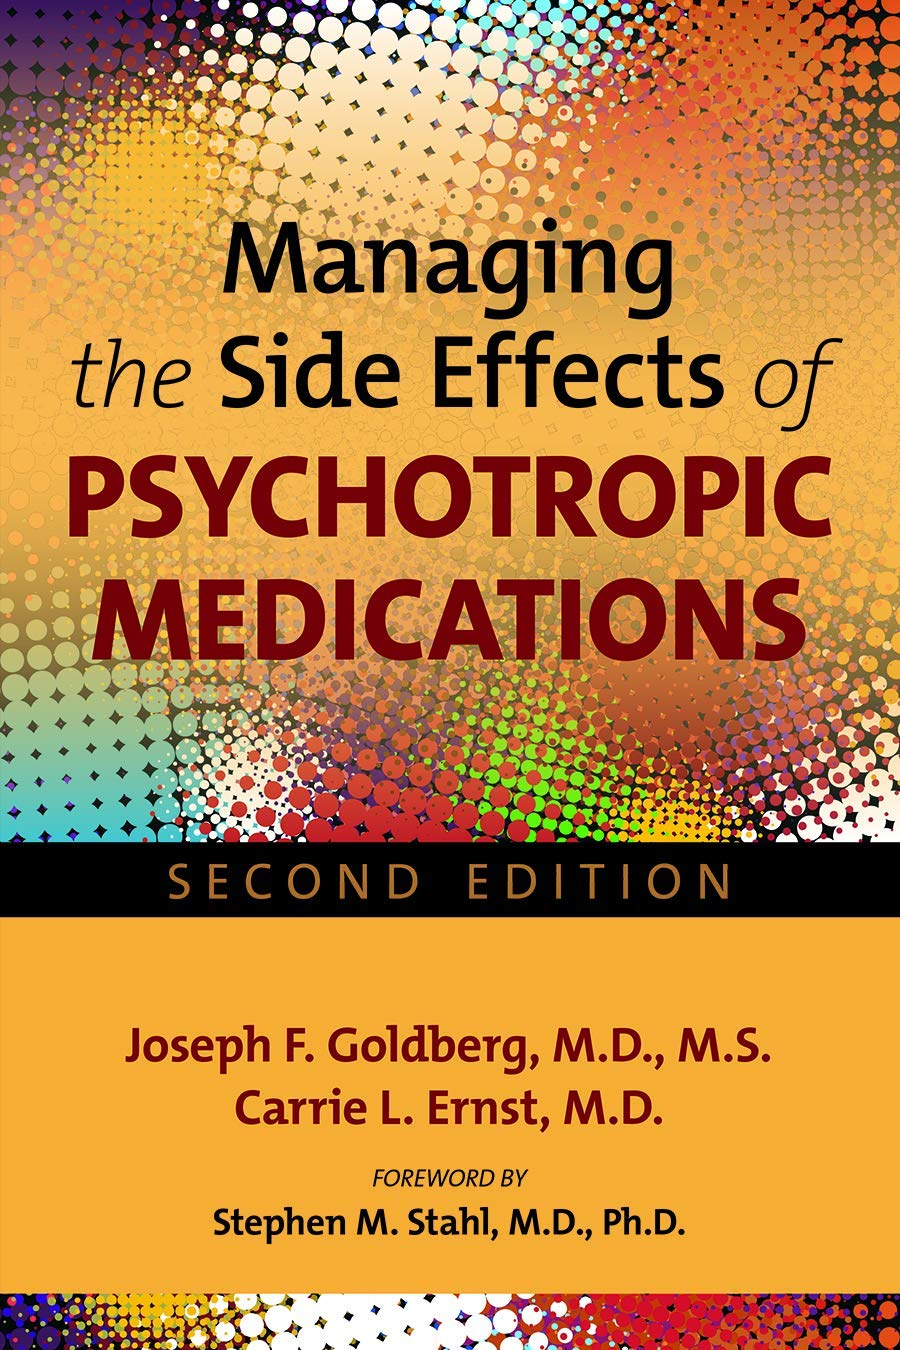 Managing the Side Effects of Psychotropic